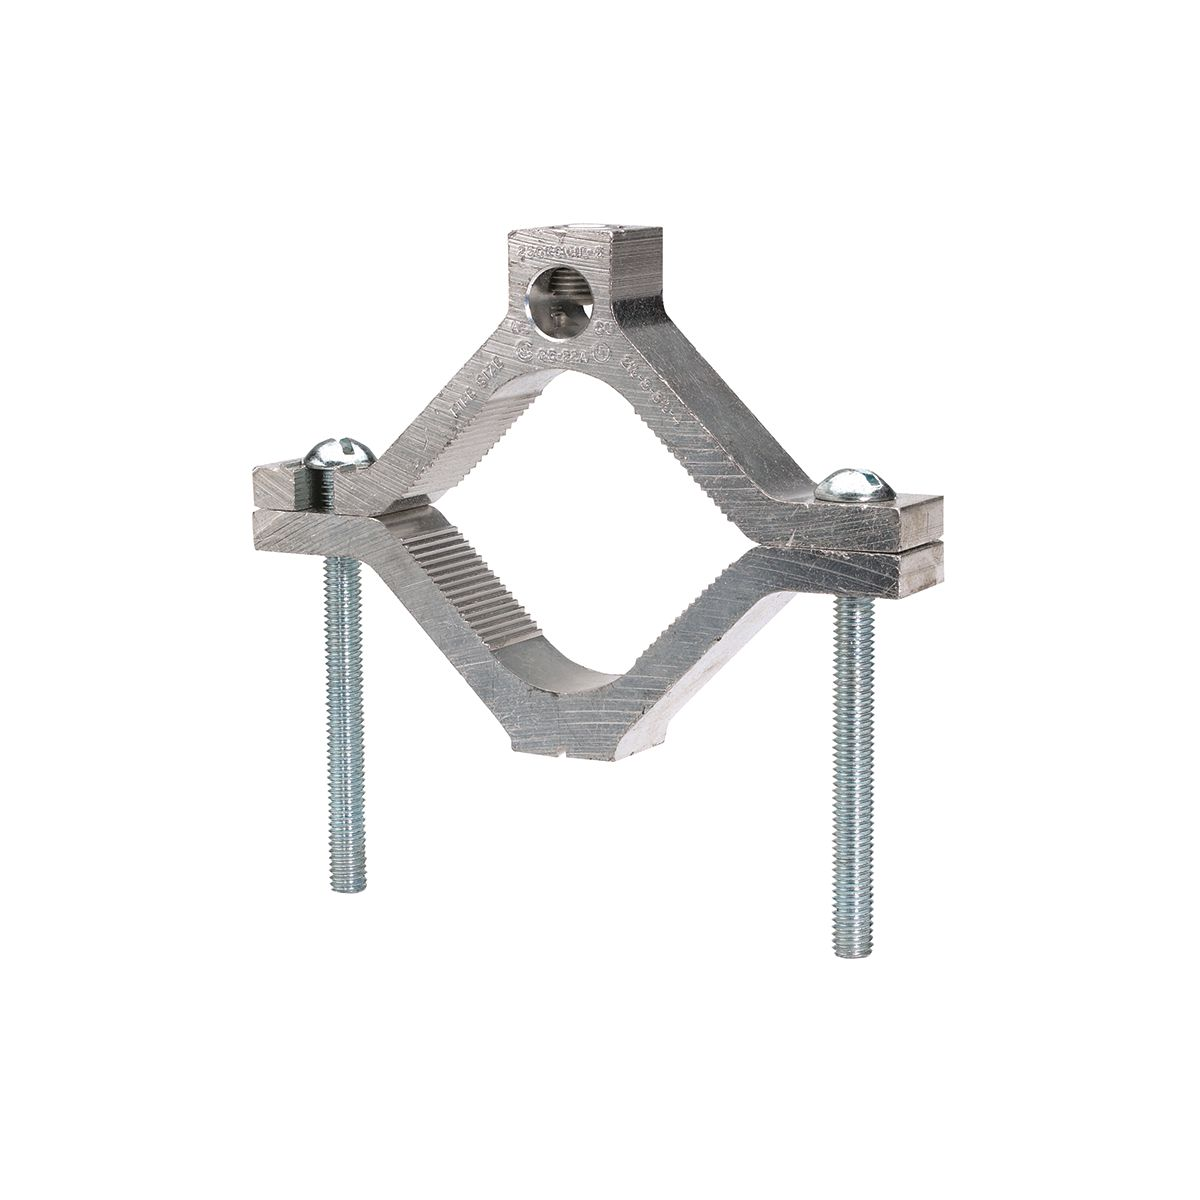 BURNDY GC18A 250-6 1 1/4-1 1/2-2PIPE GROUND CLAMP GC-A DUAL RATED